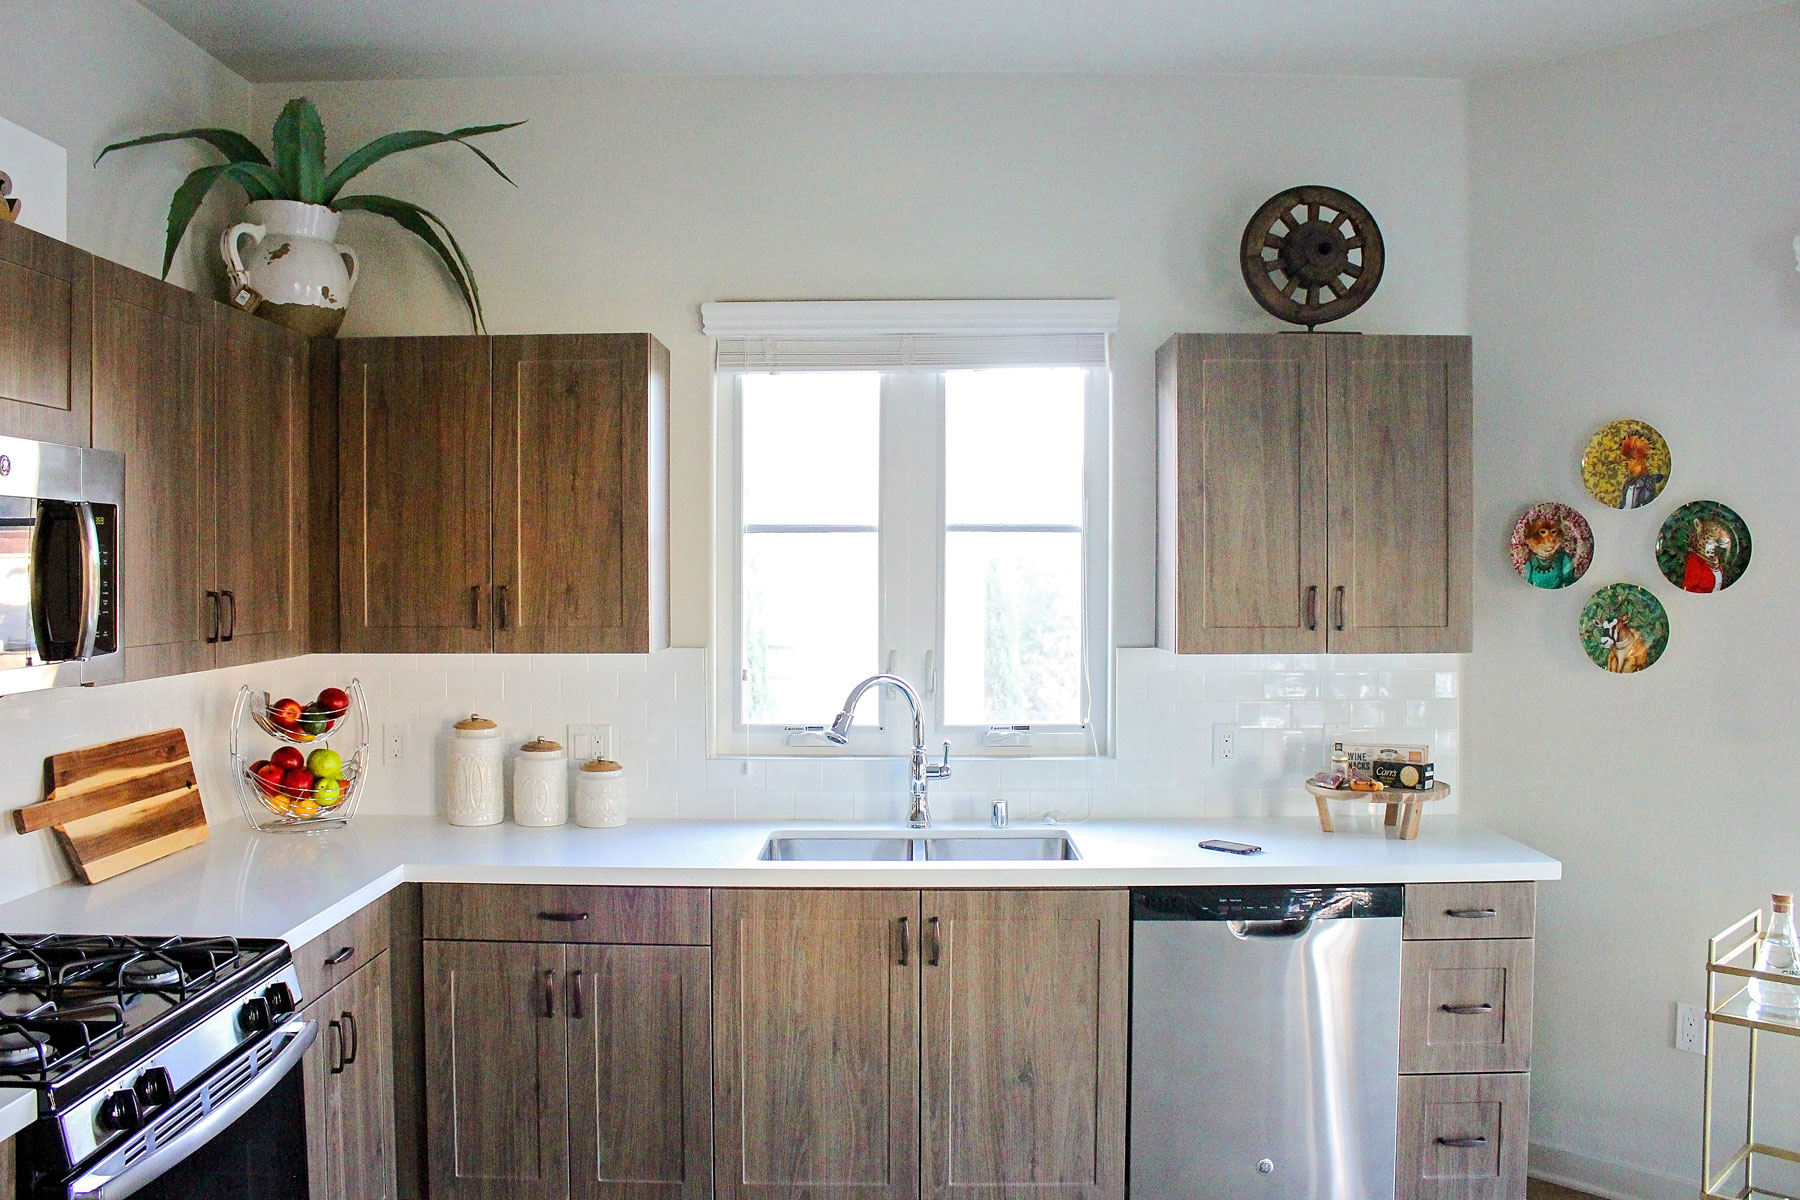 contemporary-kitchen-rustic-wood-cabinets-sleek-rollins-andrew.jpg